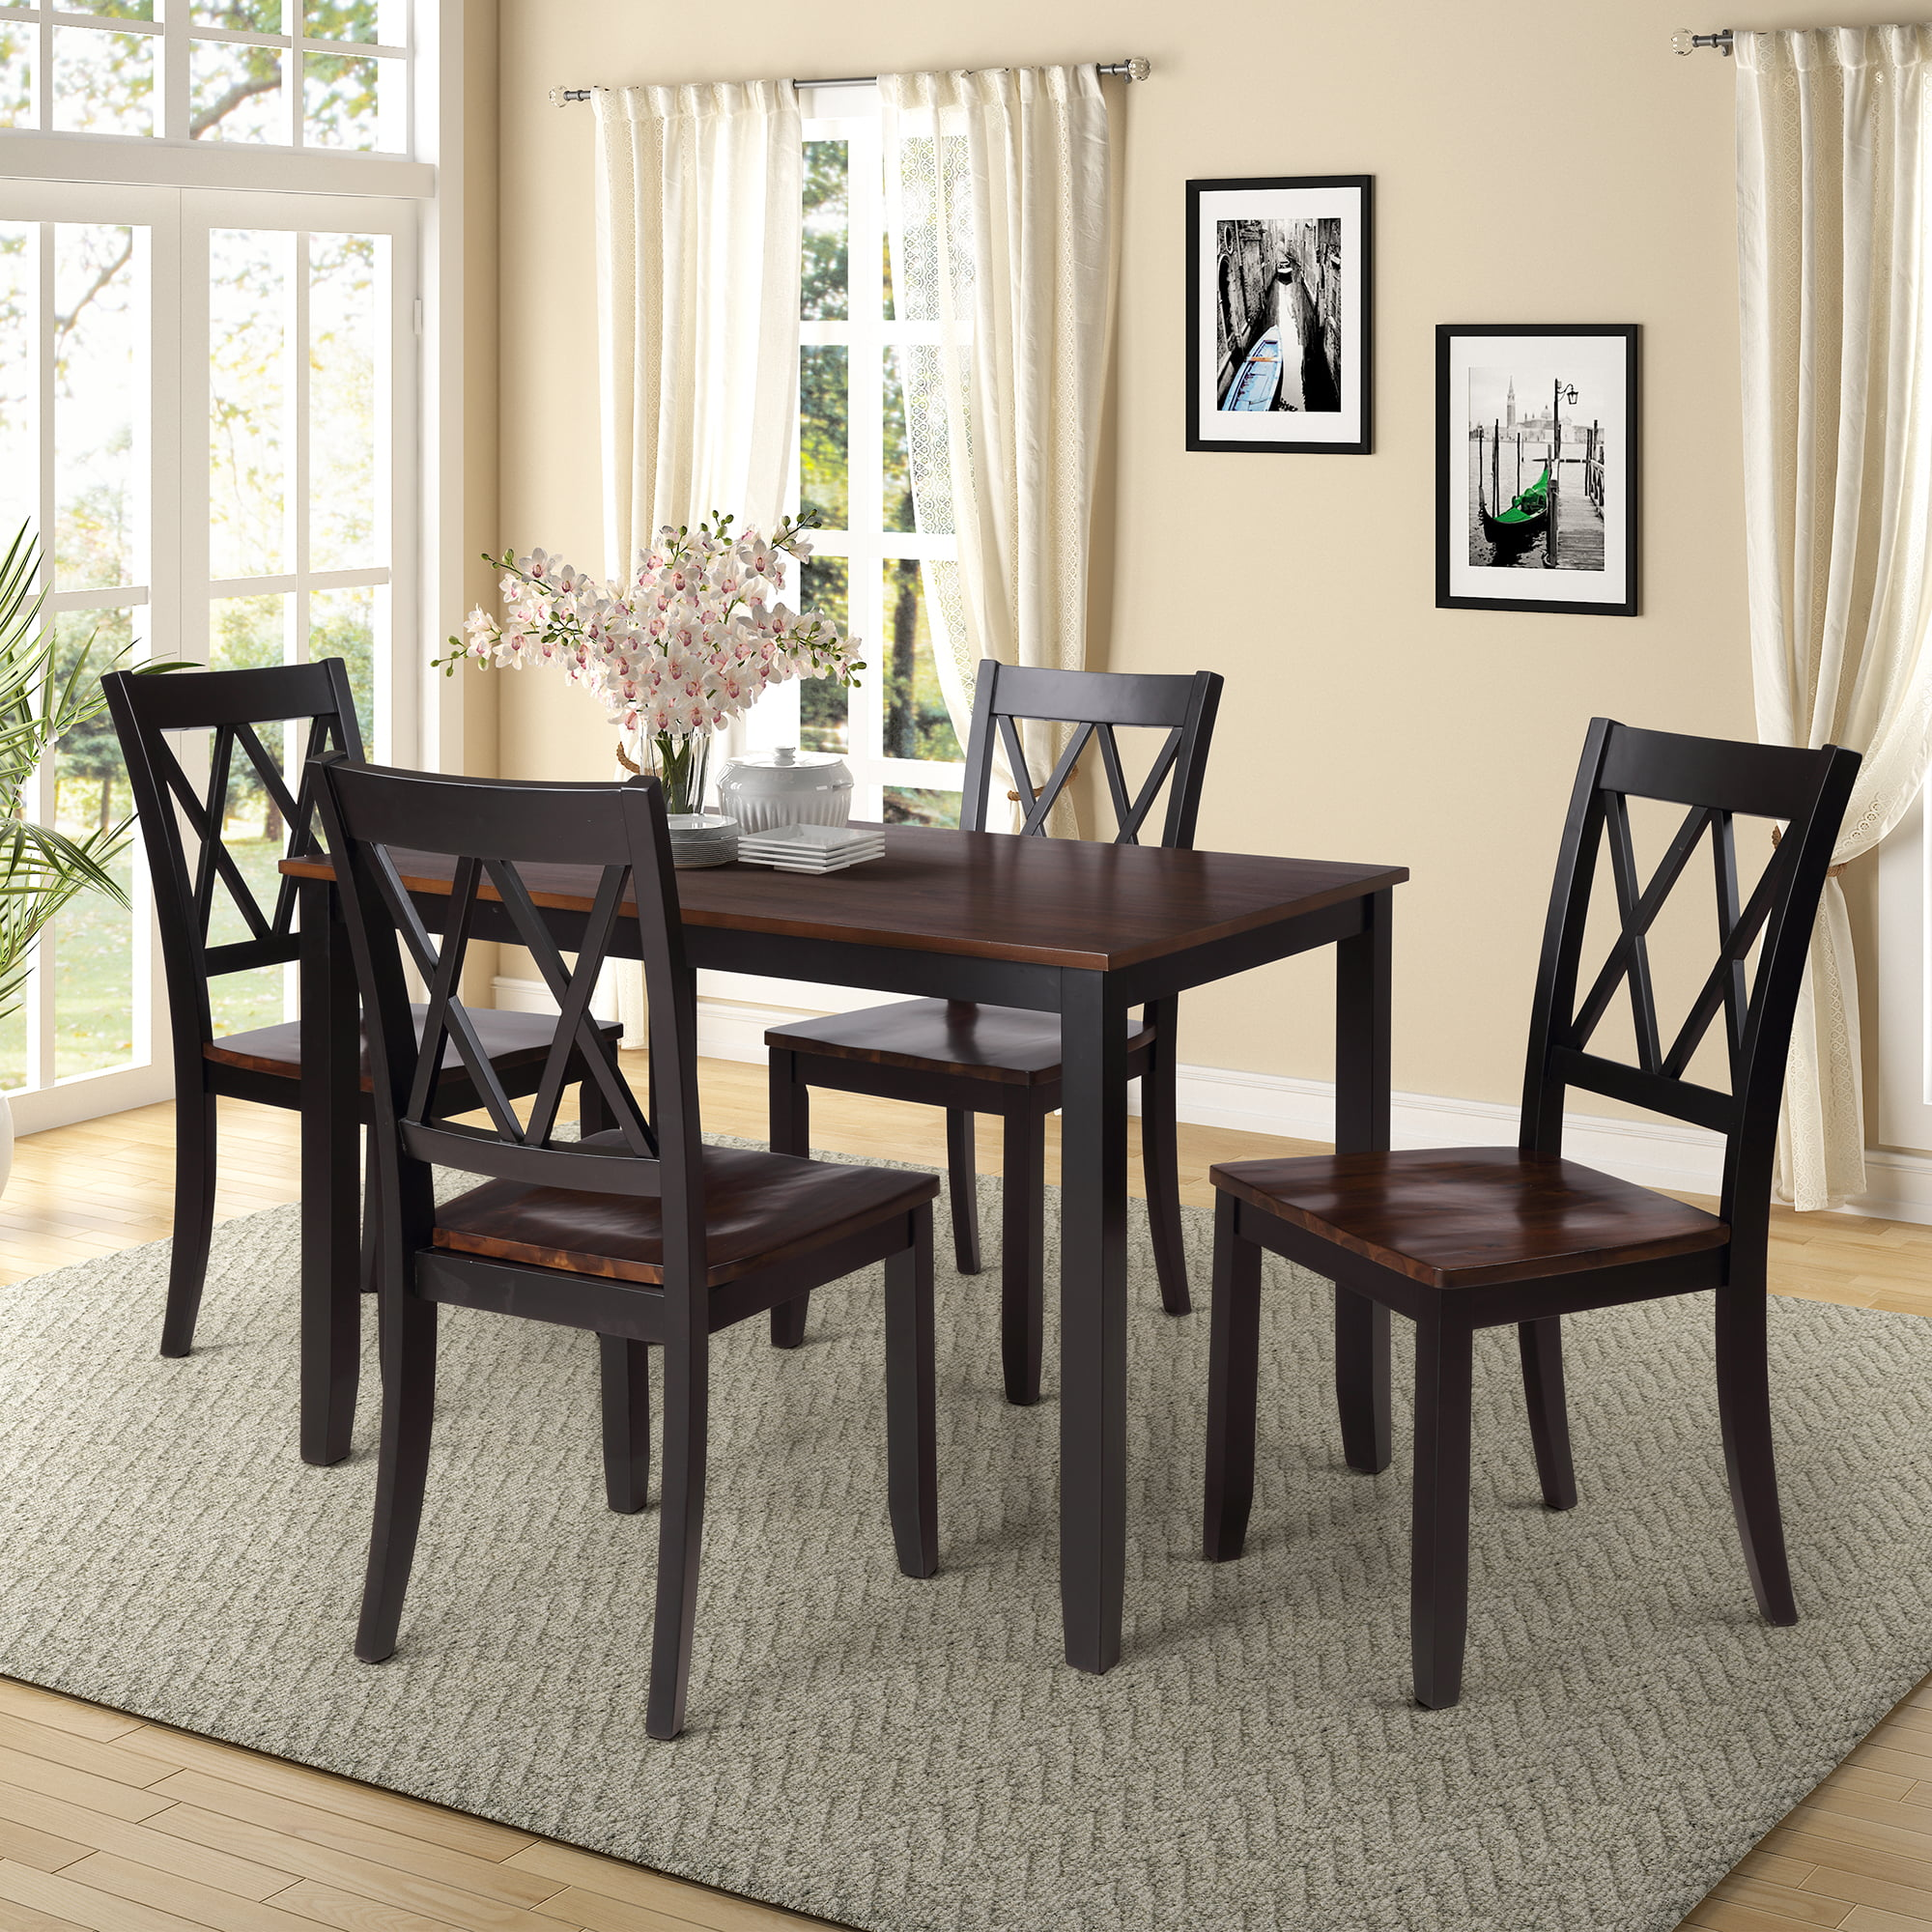 Picture of: Clearance Black Dining Table Set For 4 Modern 5 Piece Dining Room Table Sets With Chairs Heavy Duty Wooden Rectangular Kitchen Table Set For Home Kitchen Living Room Restaurant L865 Walmart Com